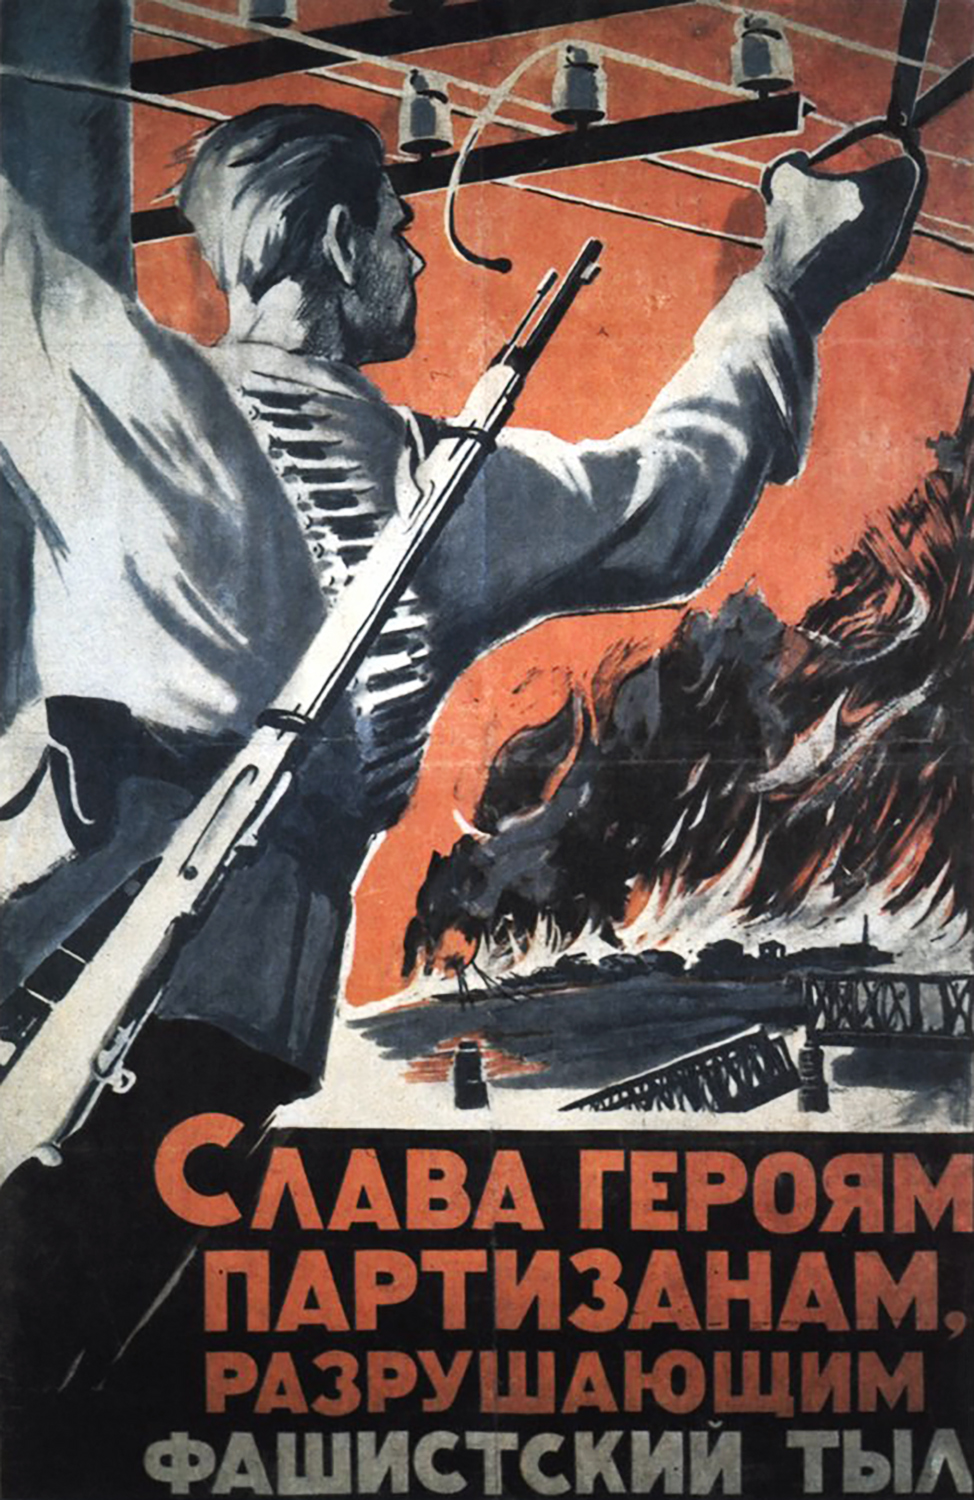 """Hail the heroic partisans, who destroy the fascists' rear."" War-time poster."